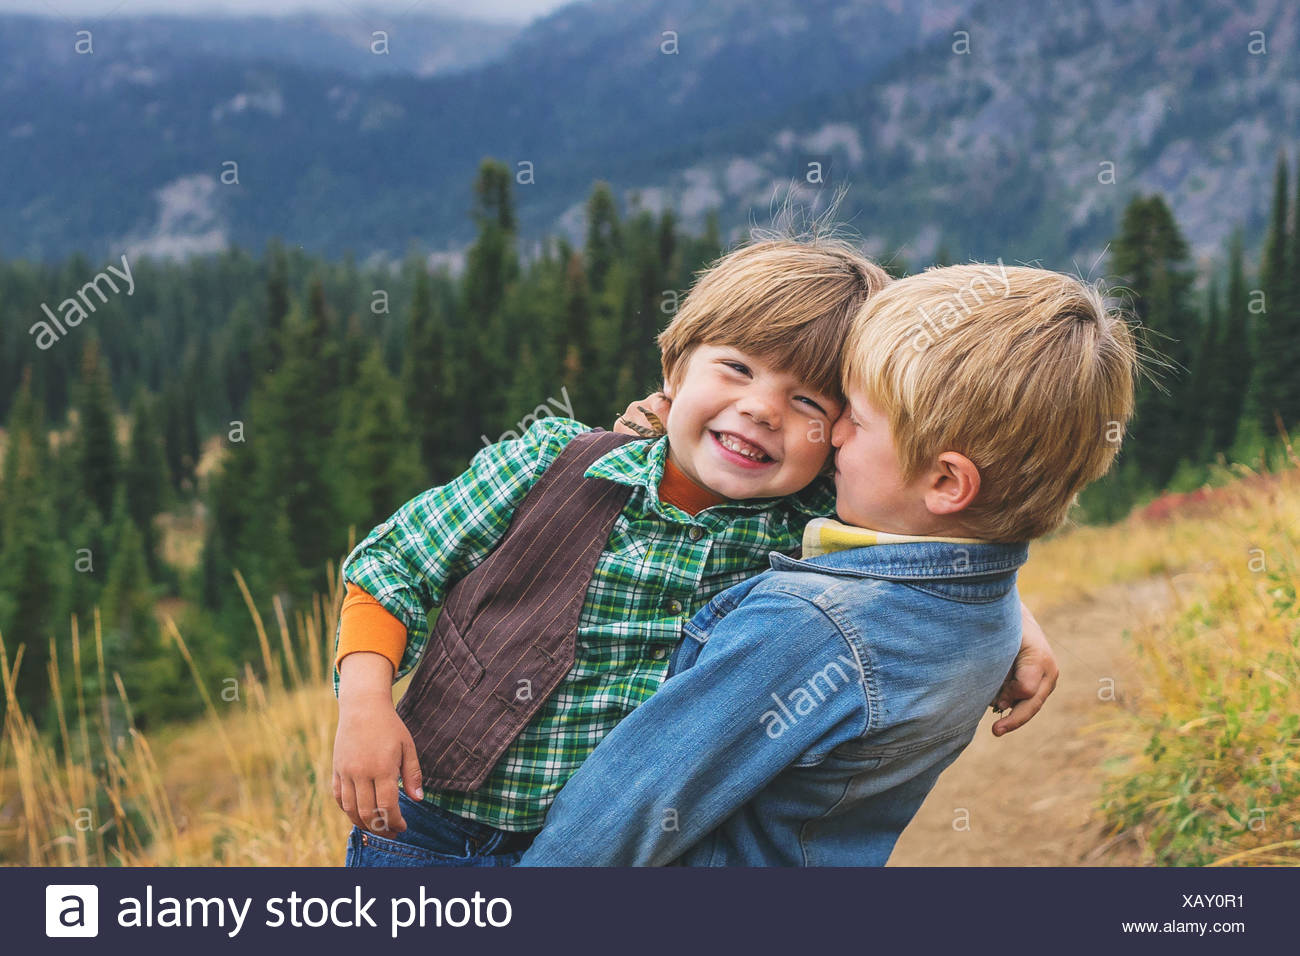 Two smiling boys messing about - Stock Image